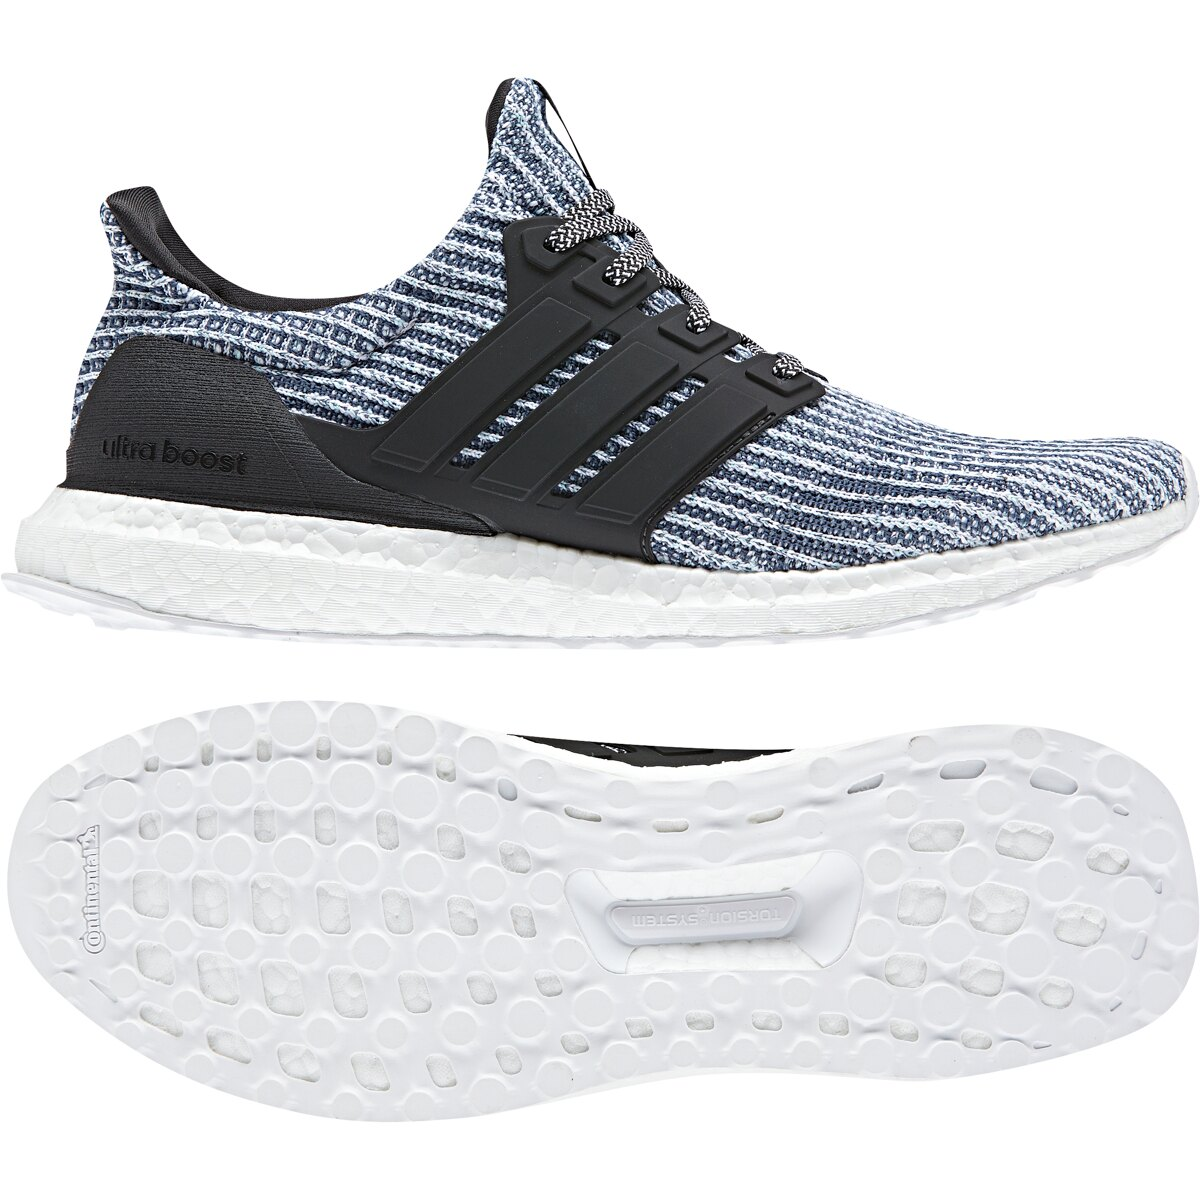 1323f833def RU Products  adidas UltraBOOST Parley 4.0 Shoe - Men s Running SKU ...